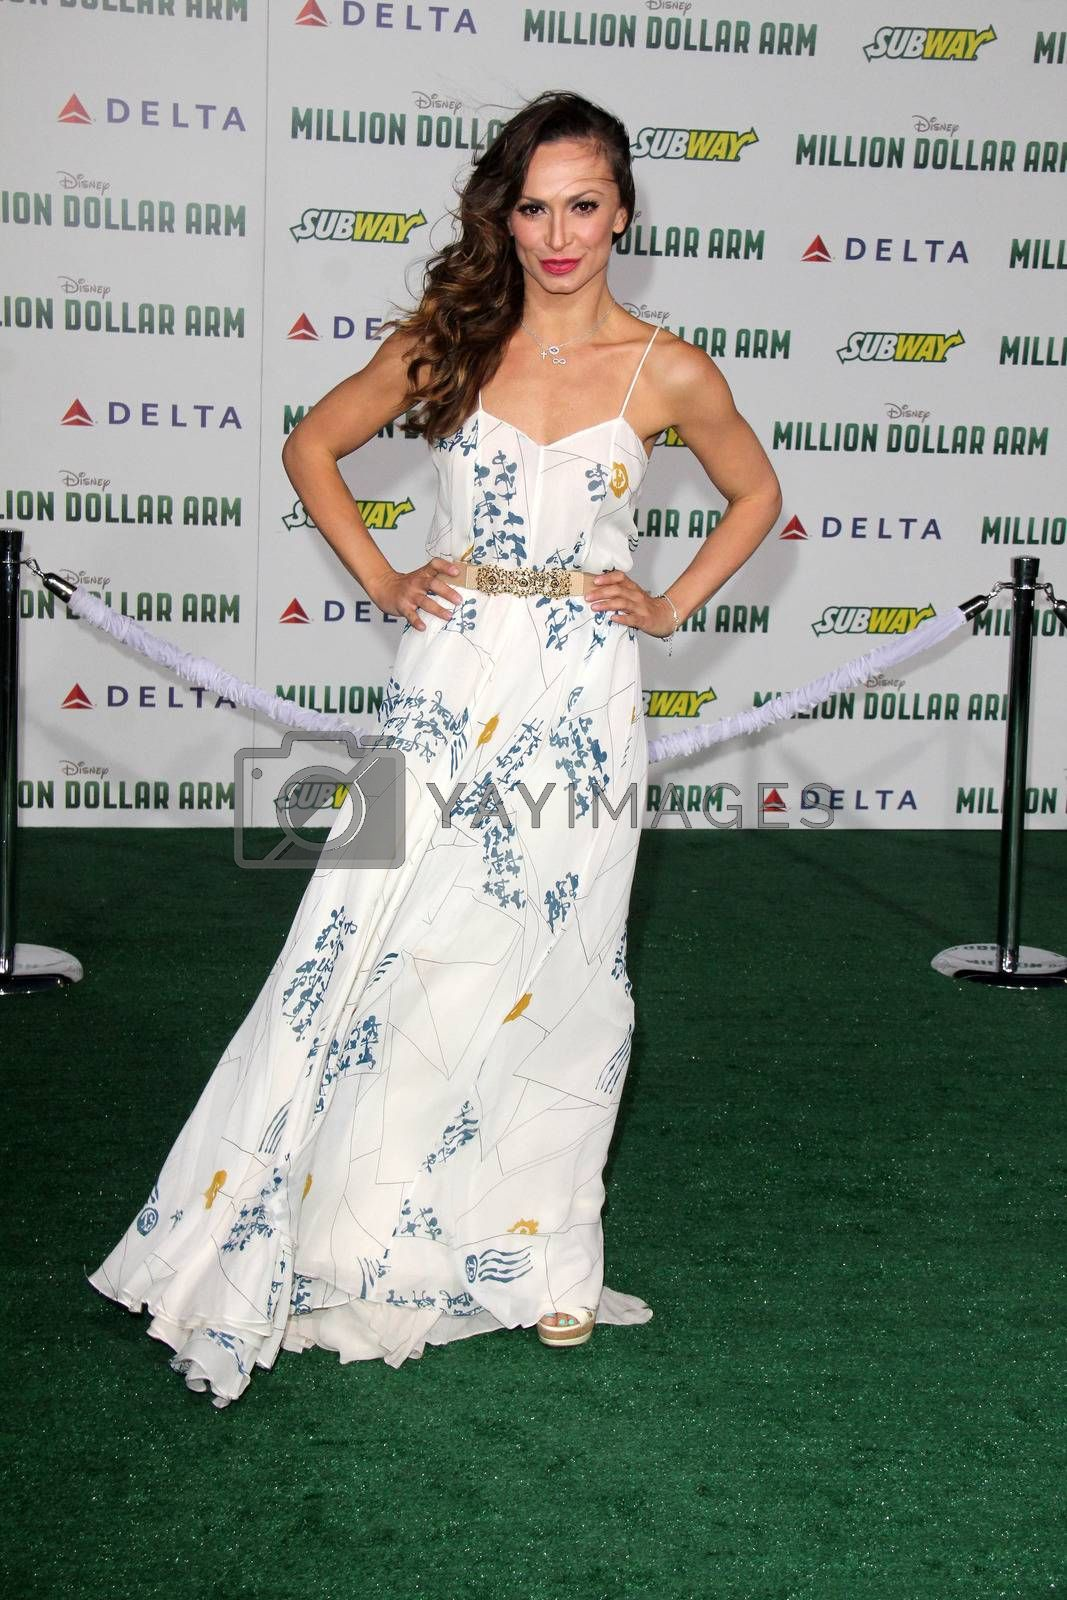 """Royalty free image of Karina Smirnoff at the """"Million Dollar Arm"""" World Premiere, El Capitan, Hollywood, CA 05-06-14/ImageCollect by ImageCollect"""